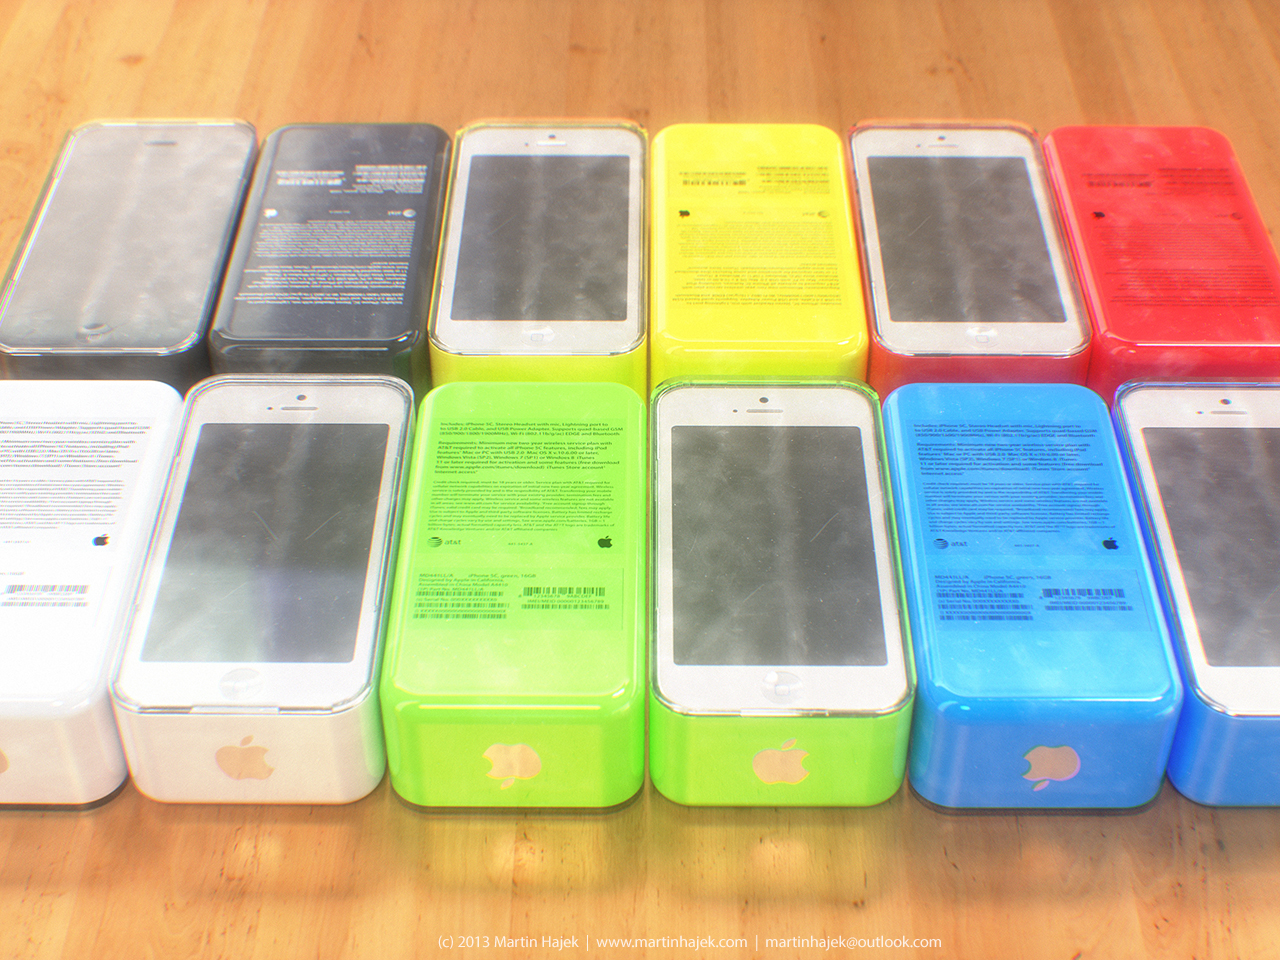 iPhone 5C boxes?